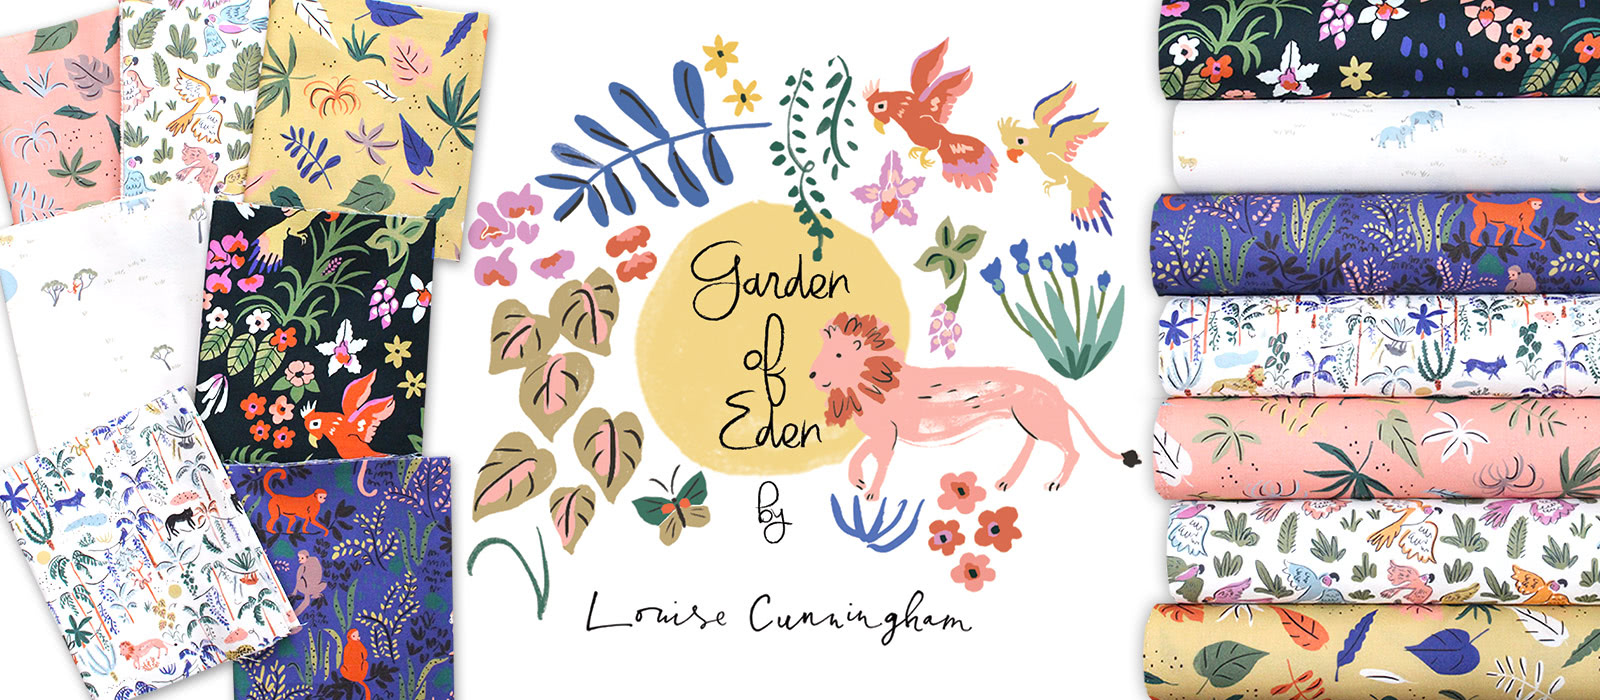 Cloud9 Fabrics Garden of Eden Collection by Louise Cunningham